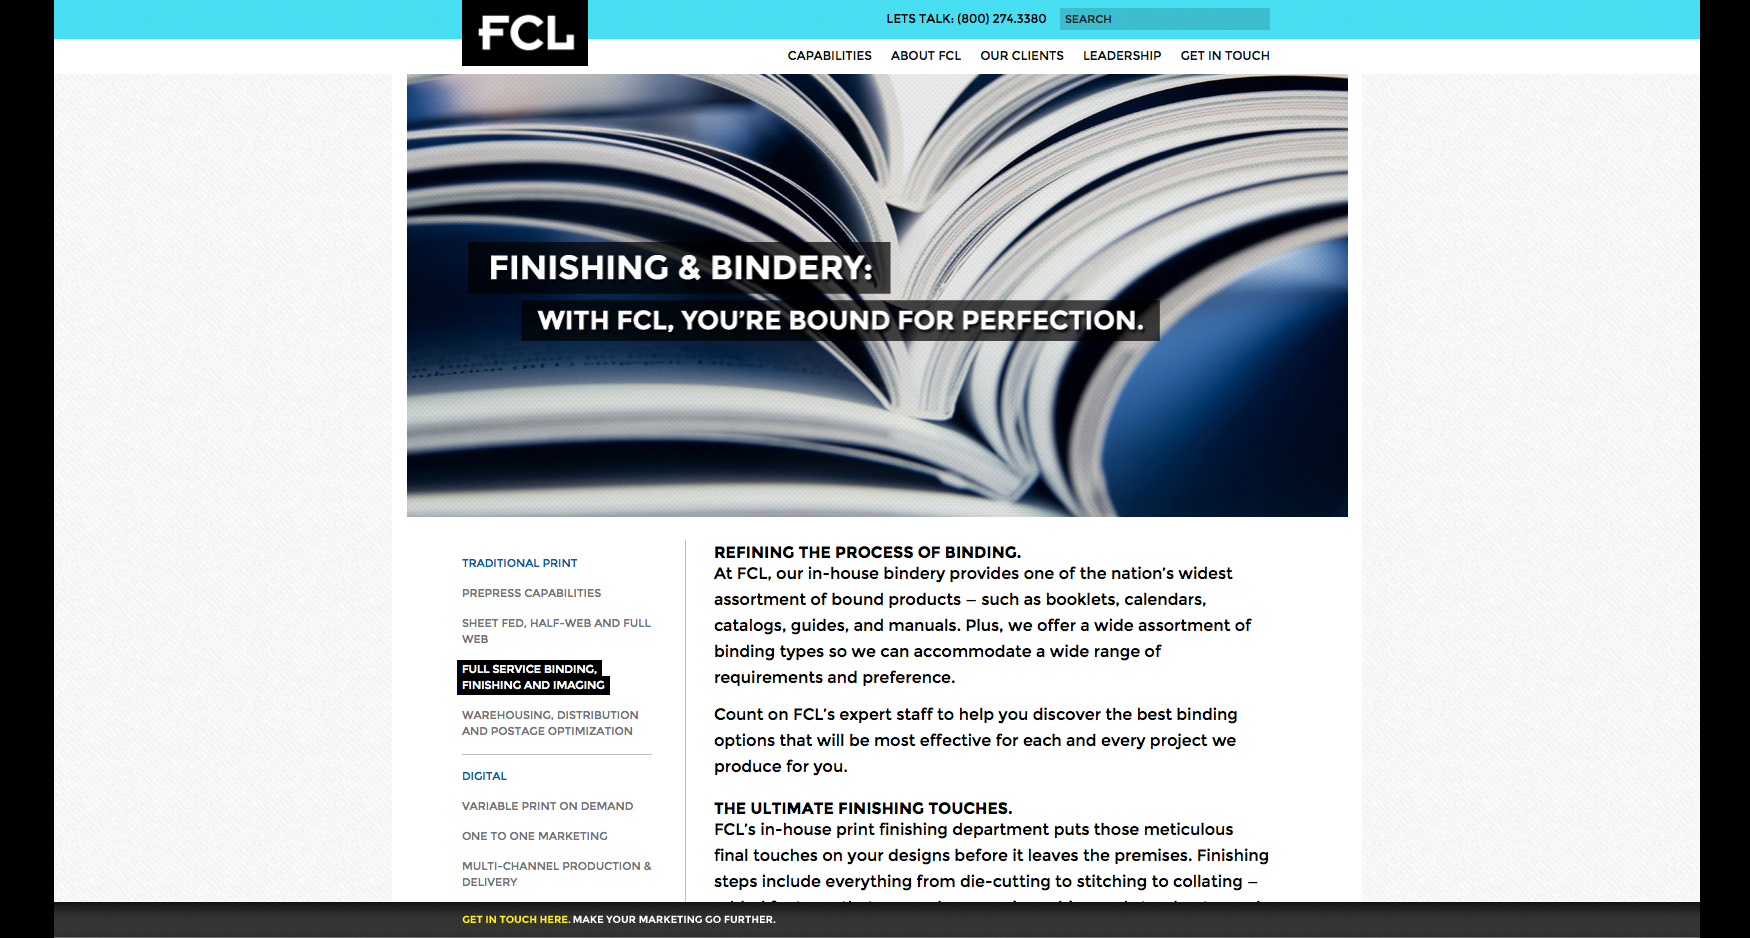 5 FCL Bindery - FCL GRAPHICS - CORPORATE WEBSITE